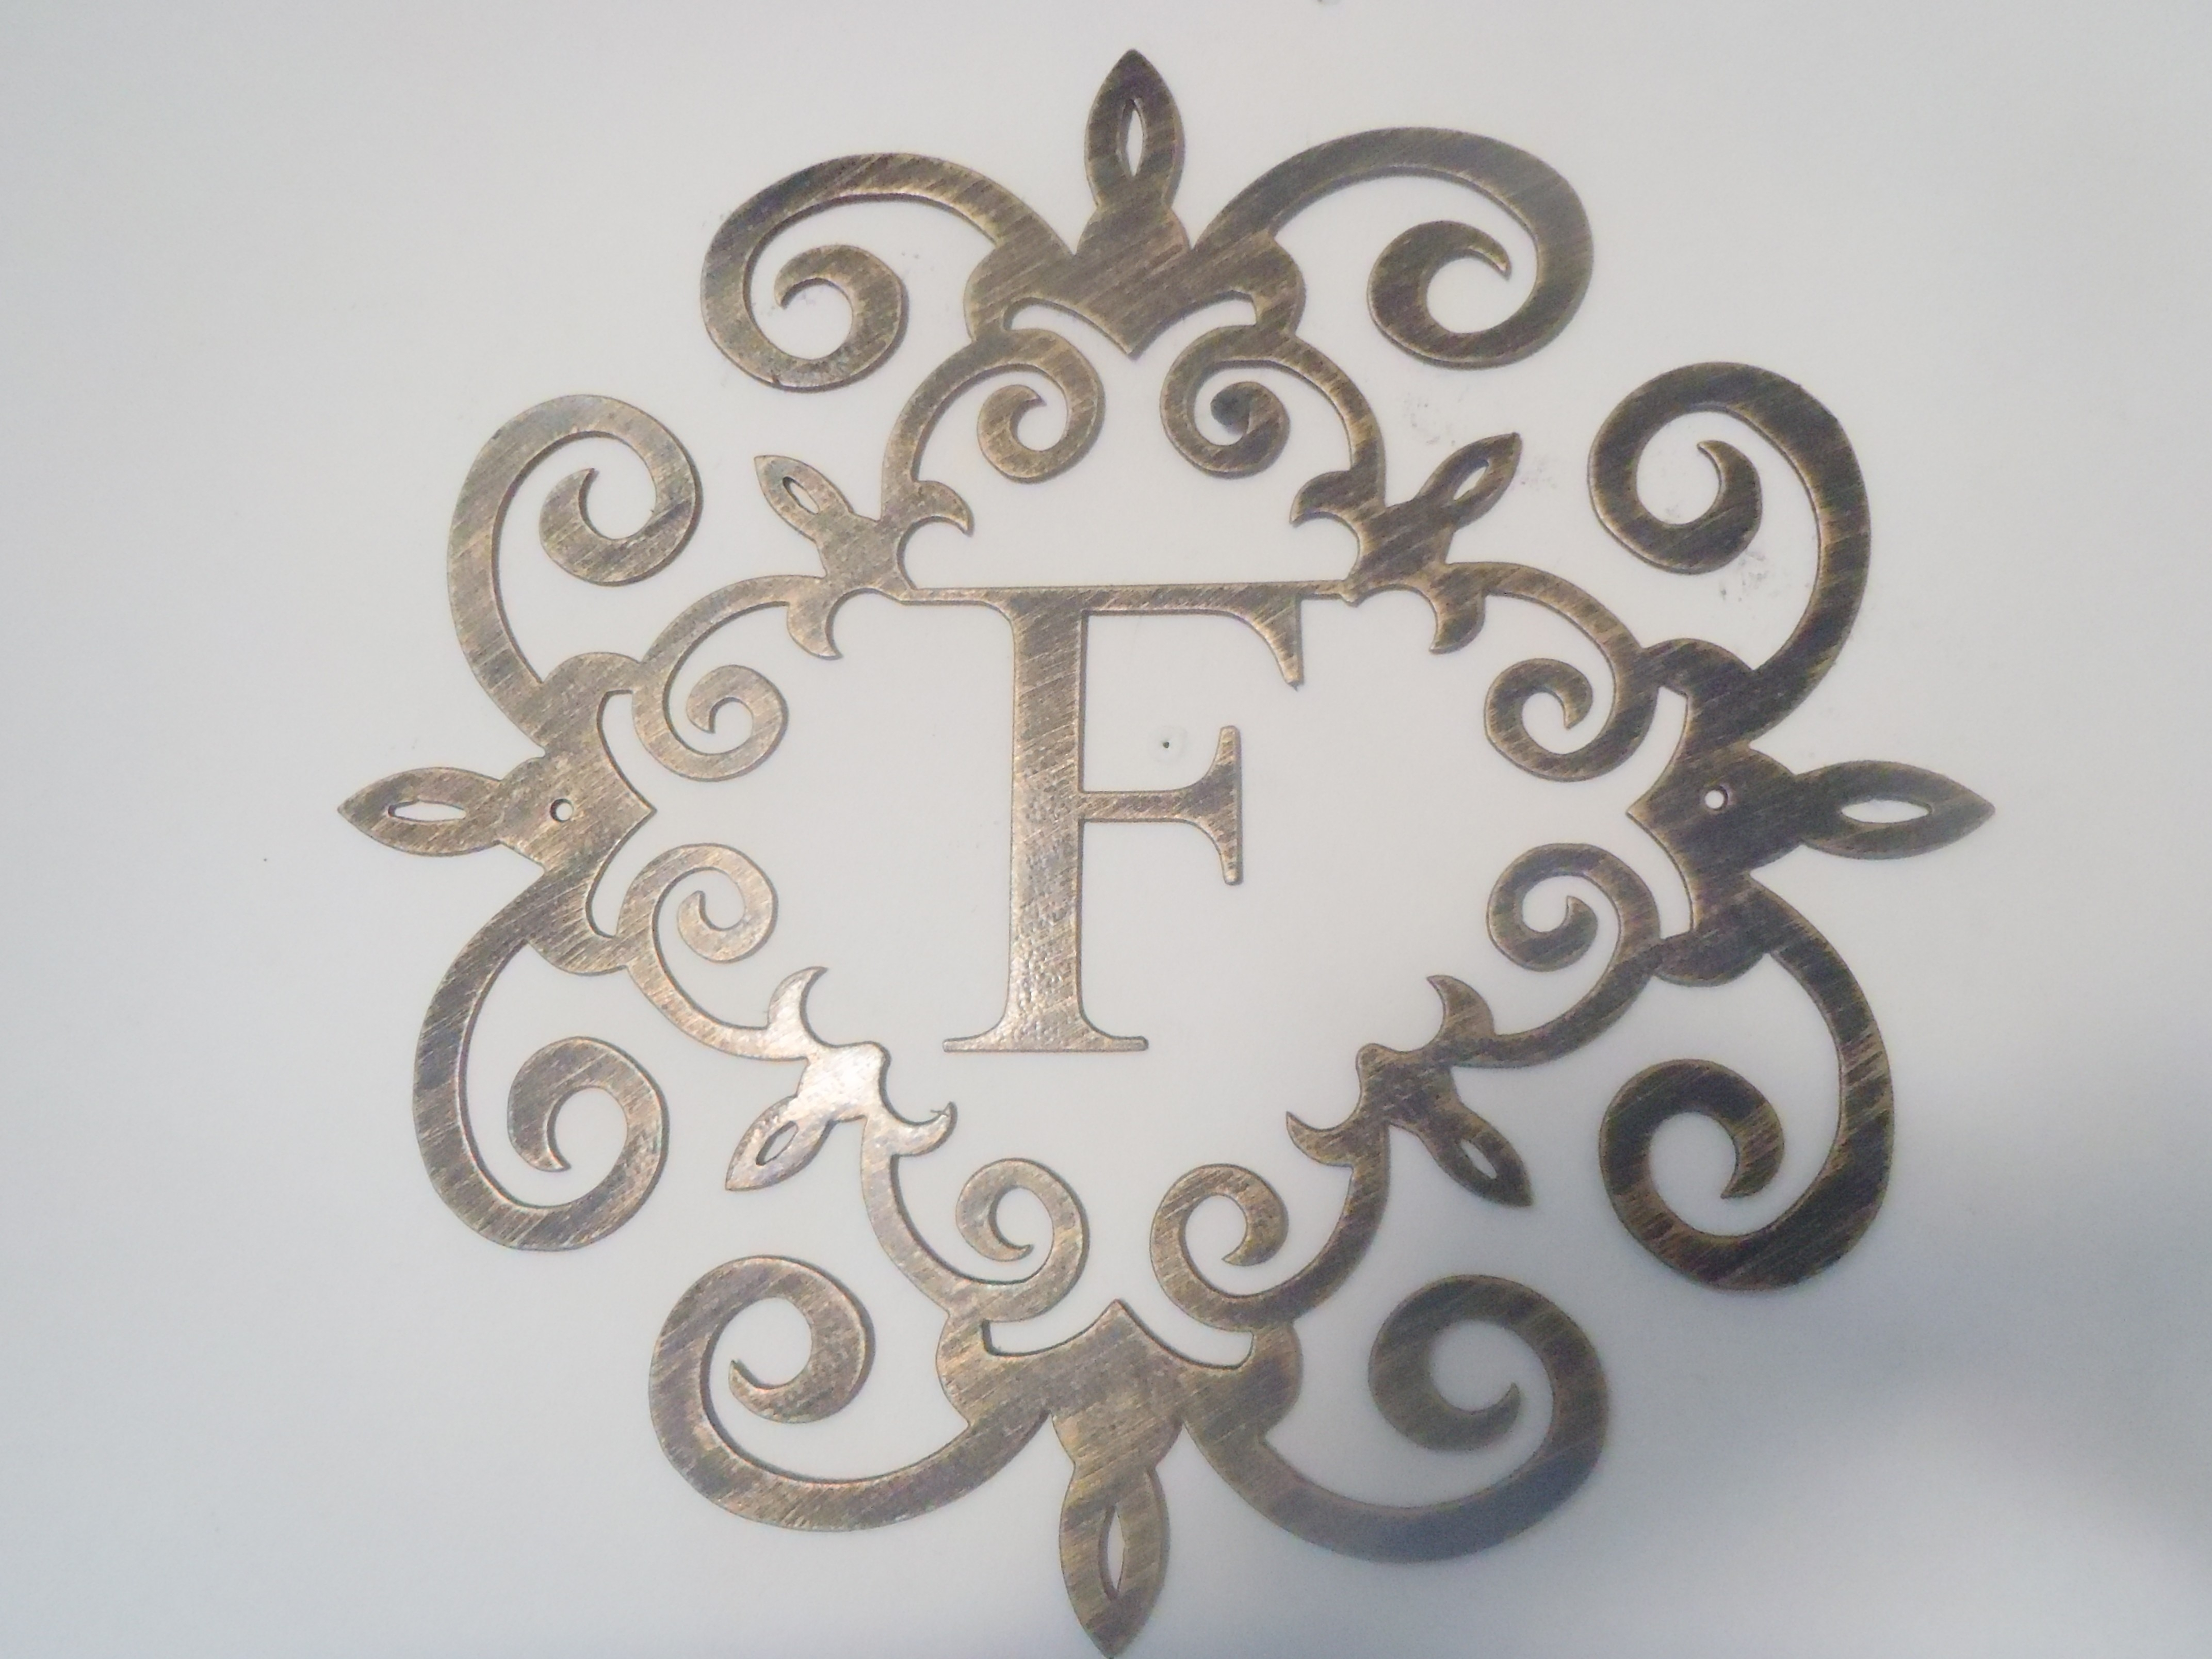 Family Initial, Monogram Inside A Metal Scroll With F Letter, 30 Regarding Most Current Metal Letter Wall Art (View 5 of 20)